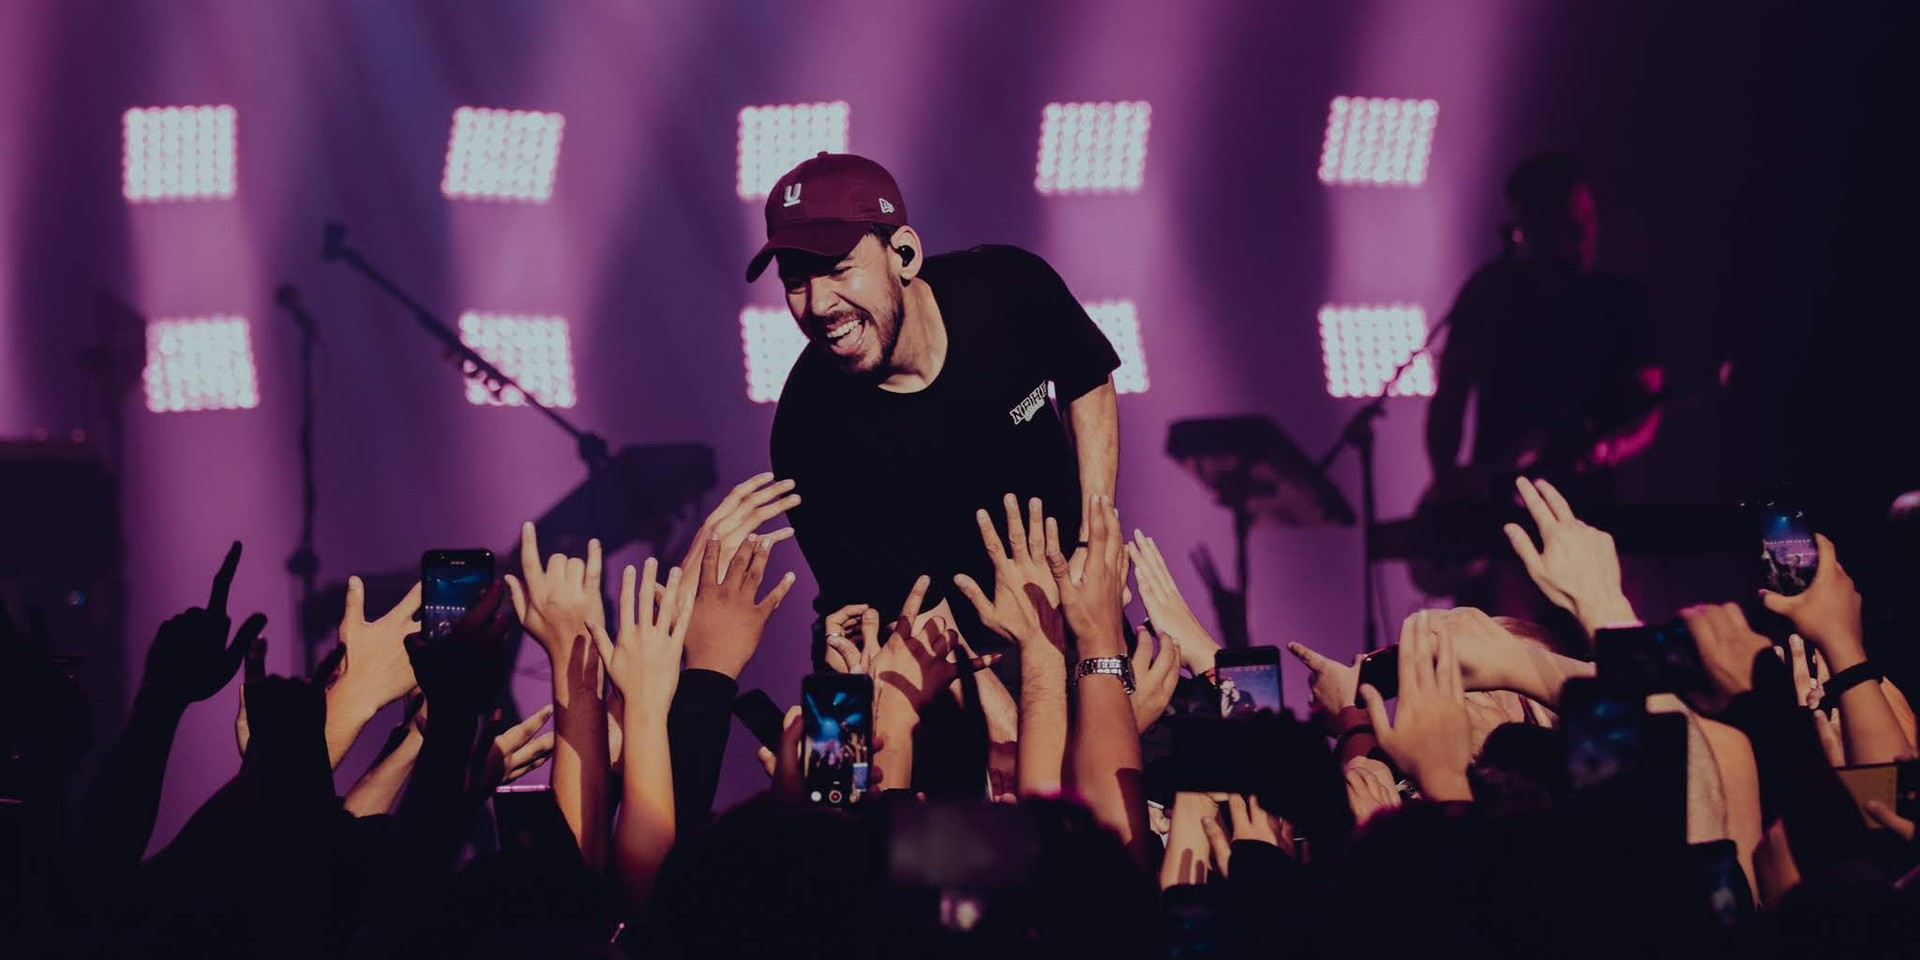 Mike Shinoda serves up fresh rhymes and nostalgia at first solo Manila concert – photo gallery